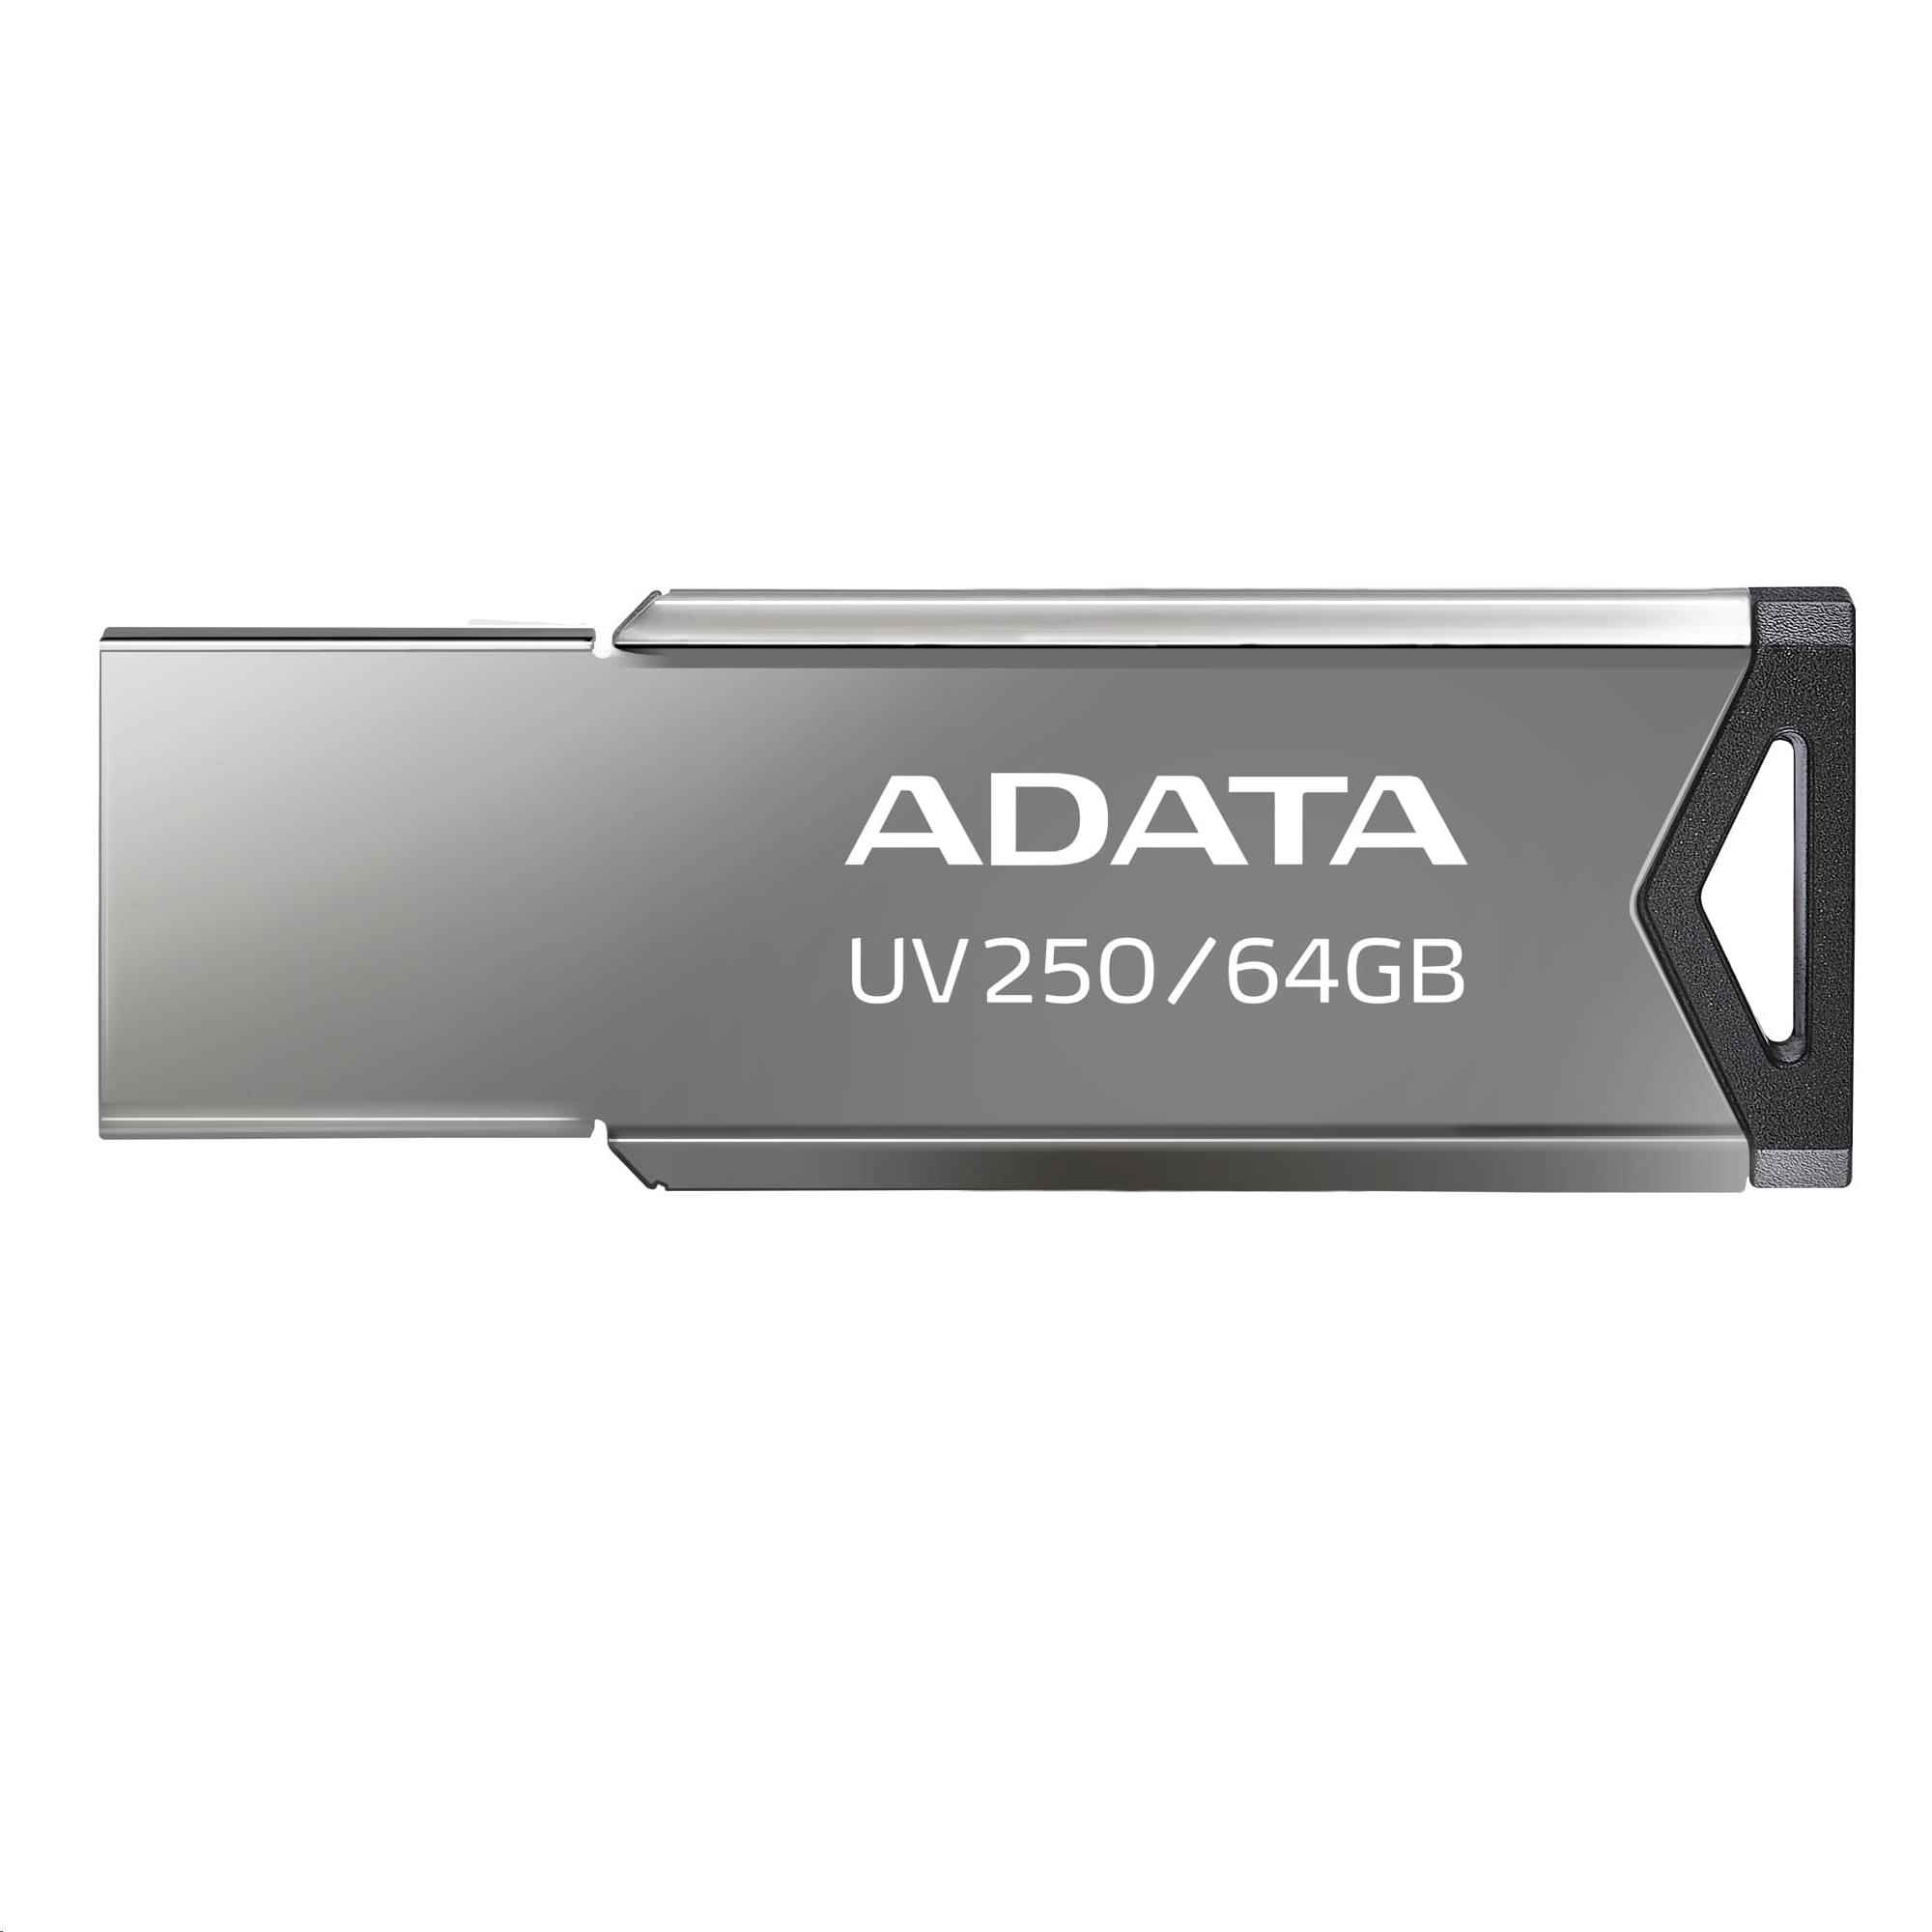 ADATA Flash Disk 64GB USB 2.0 DashDrive UV250, stříbrná